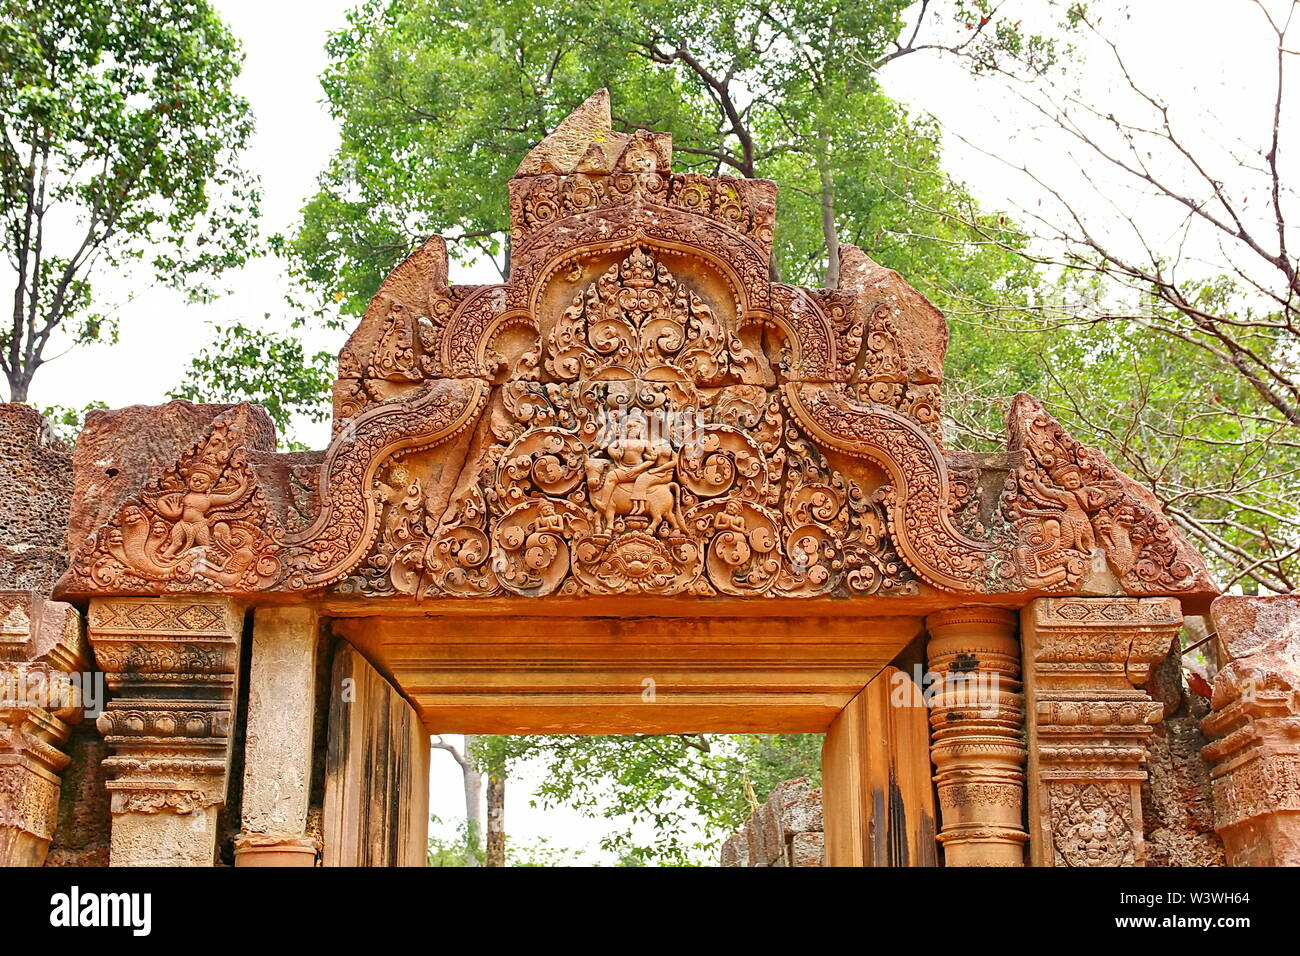 Banteay Srei Siem Reap Castle  is one of the most beautiful castles in Cambodia. Construction of pink sandstone Carved into patterns related to Hindui - Stock Image